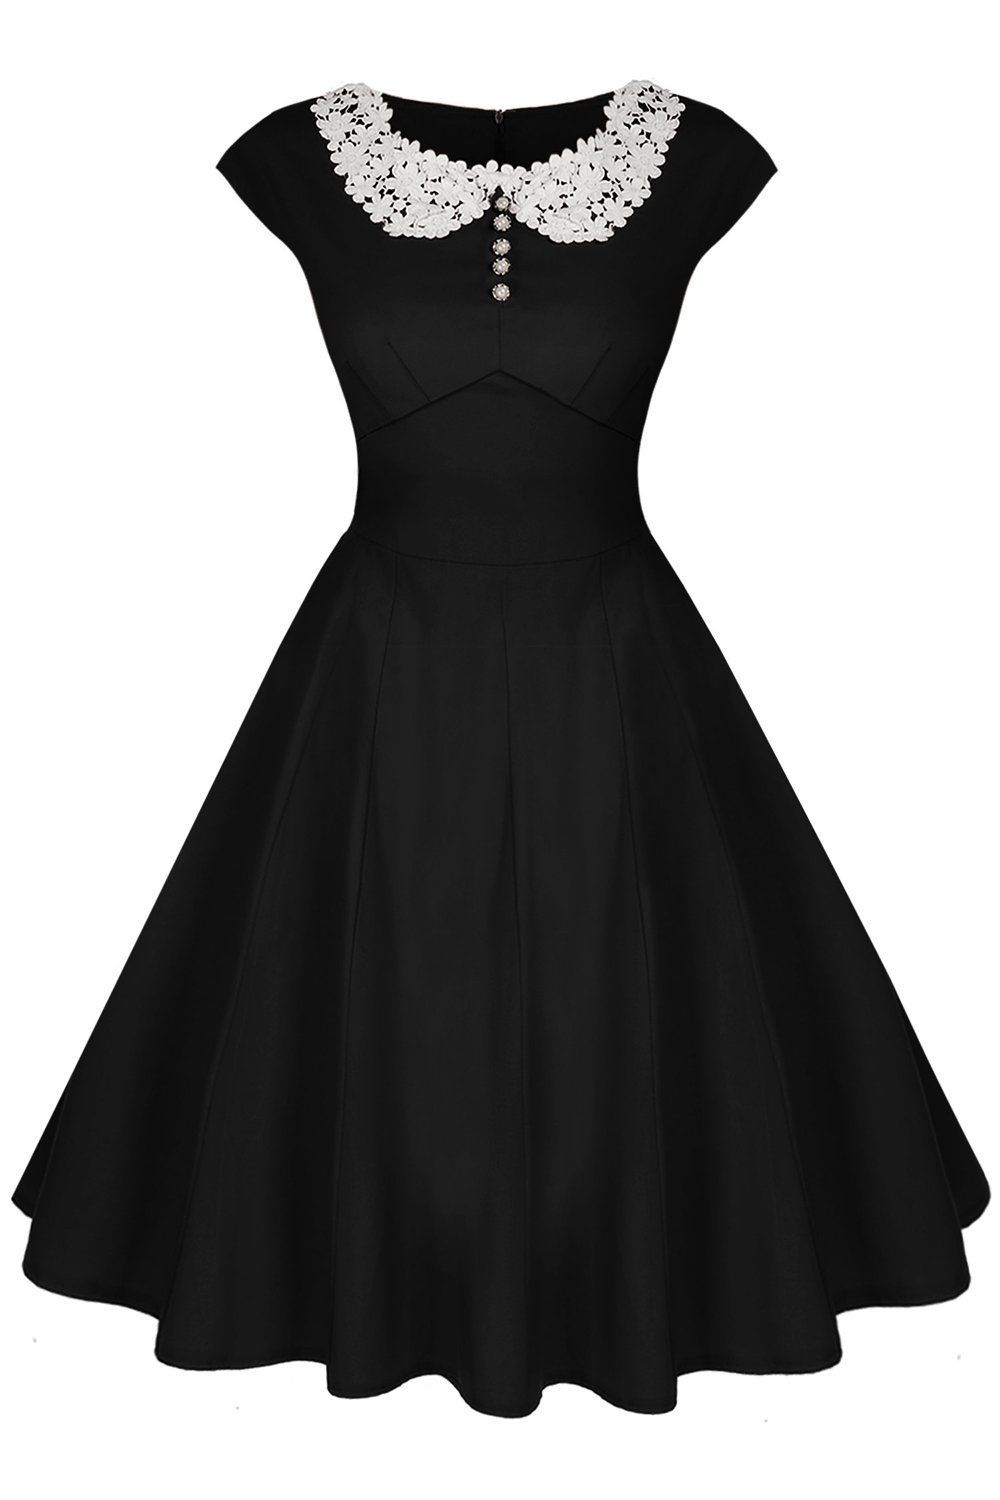 Photo of 15 Classic Vintage 1940s Dress Styles